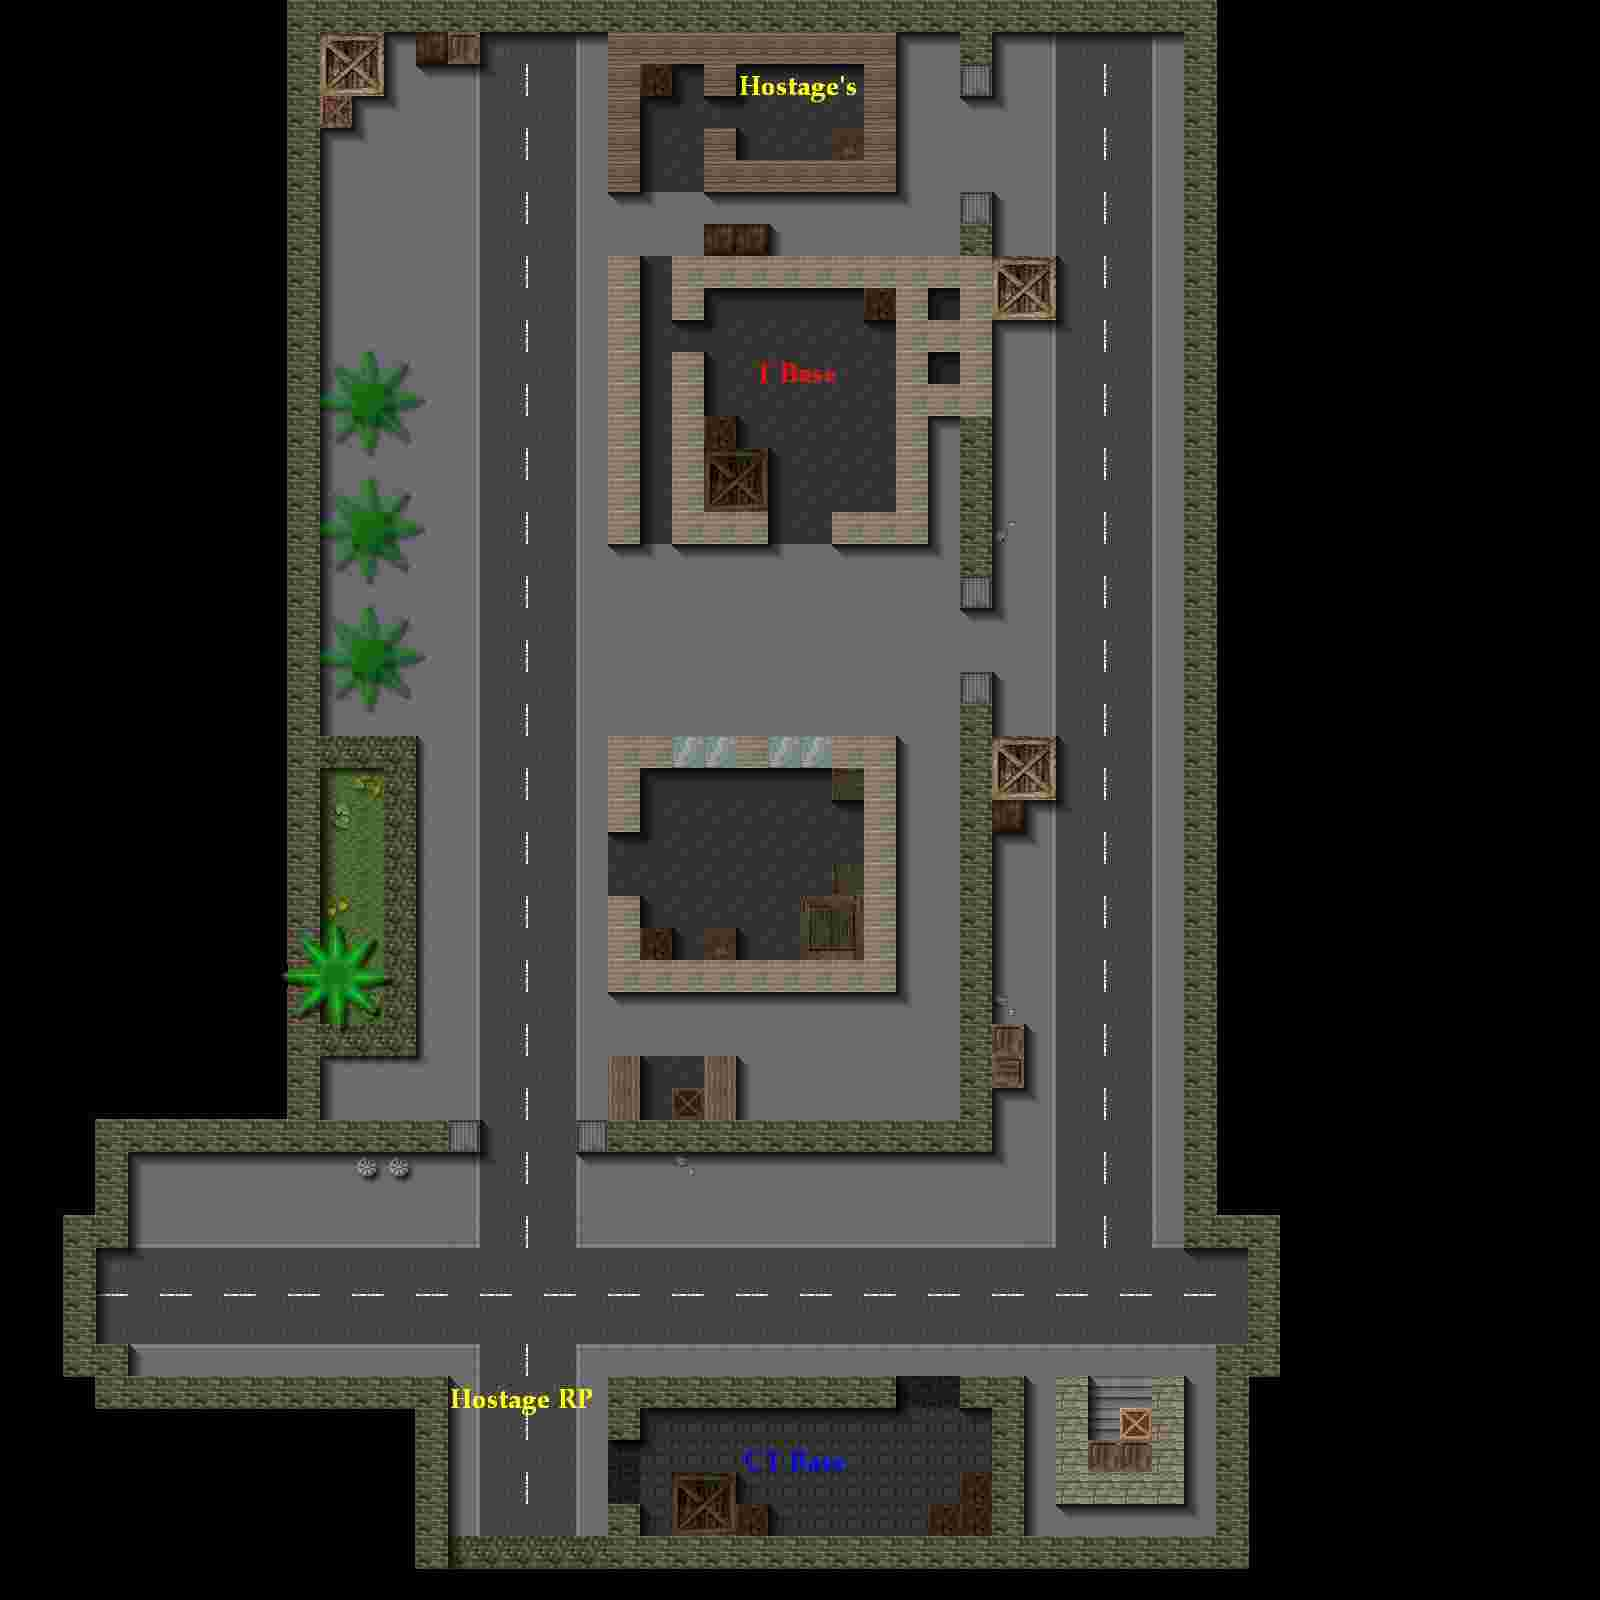 Counter-Strike 2D Map - cs_compound screenshot 1